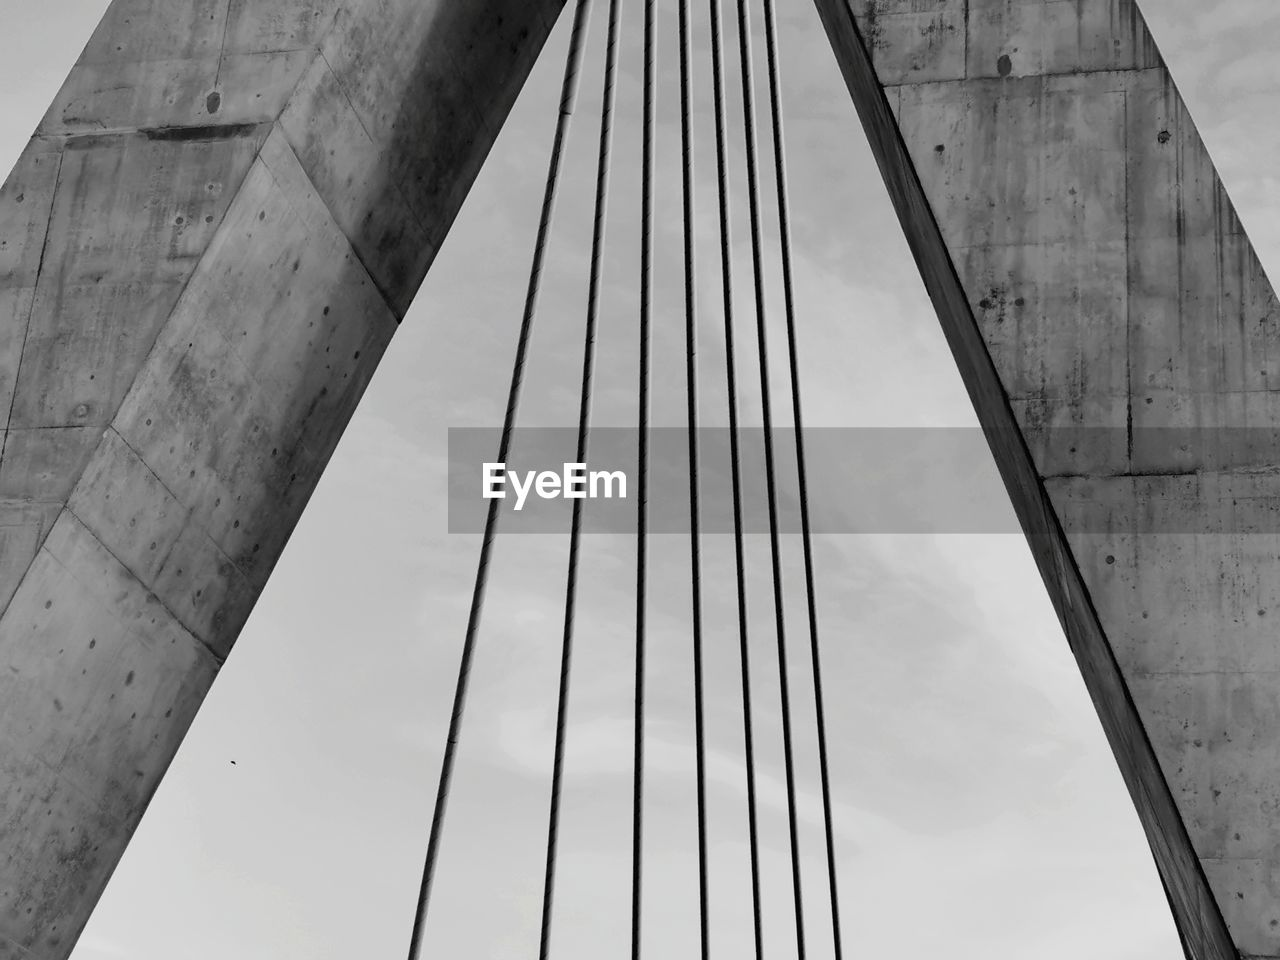 LOW ANGLE VIEW OF BRIDGE CABLES AGAINST SKY